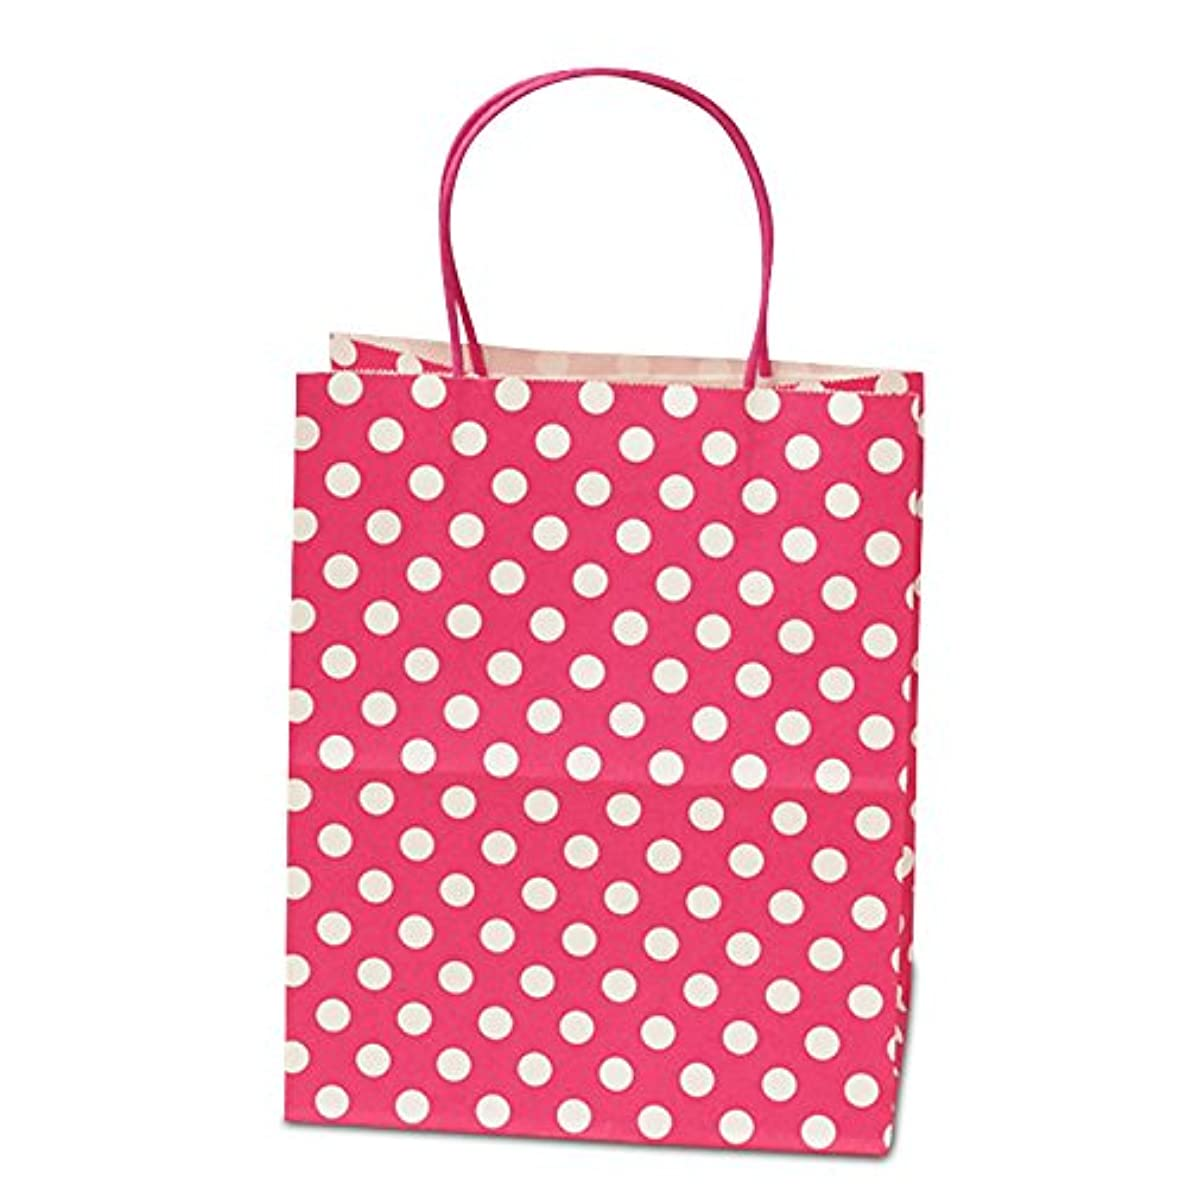 Panda Party Supplies Twisted Handle Matte Hot Pink Polka Dot Paper Shopping Gift Bags (12)